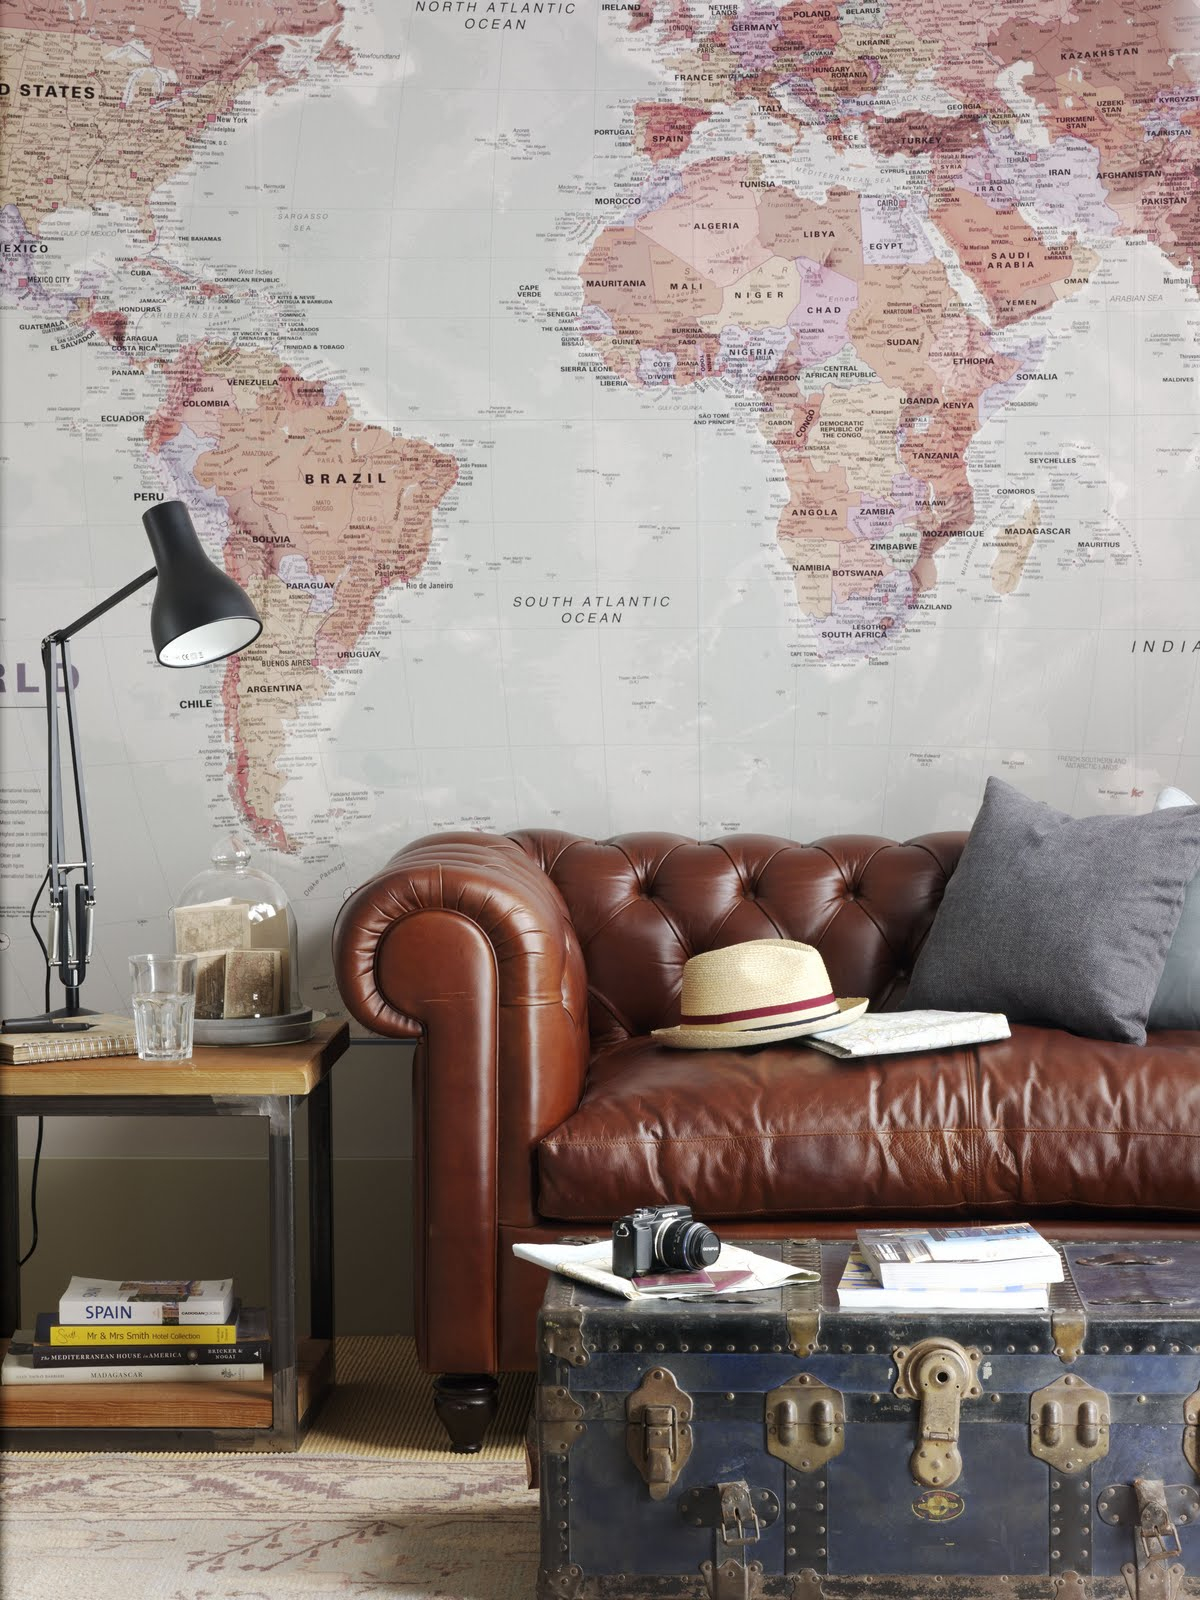 Our World Map mural was used recently in this inspiring photoshoot for 1200x1600